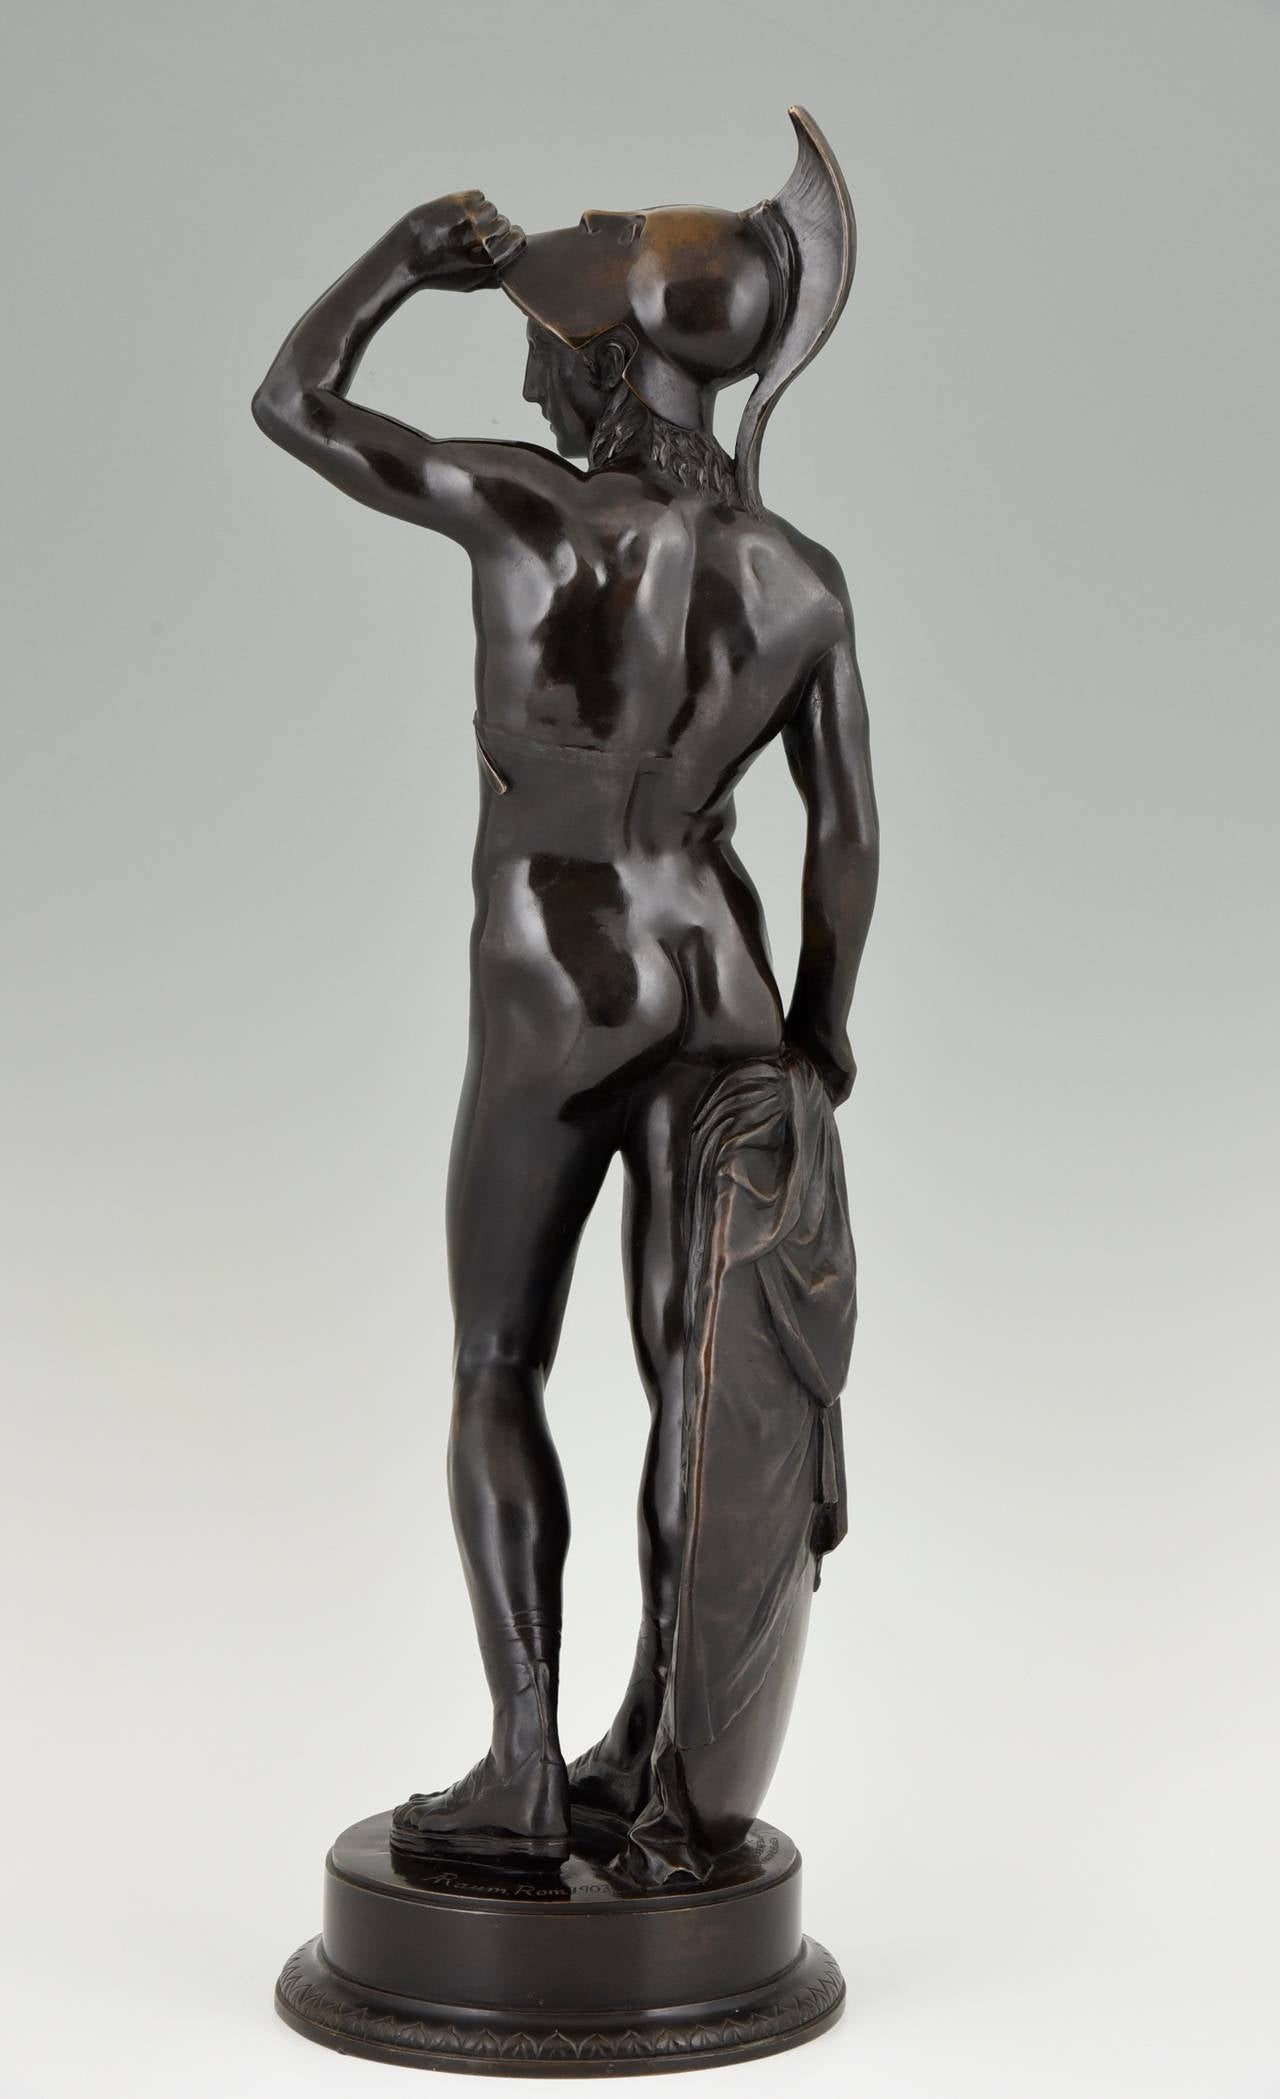 Neoclassical Antique Bronze Sculpture of a Male Nude by Alfred Raum, Rome, 1903 For Sale